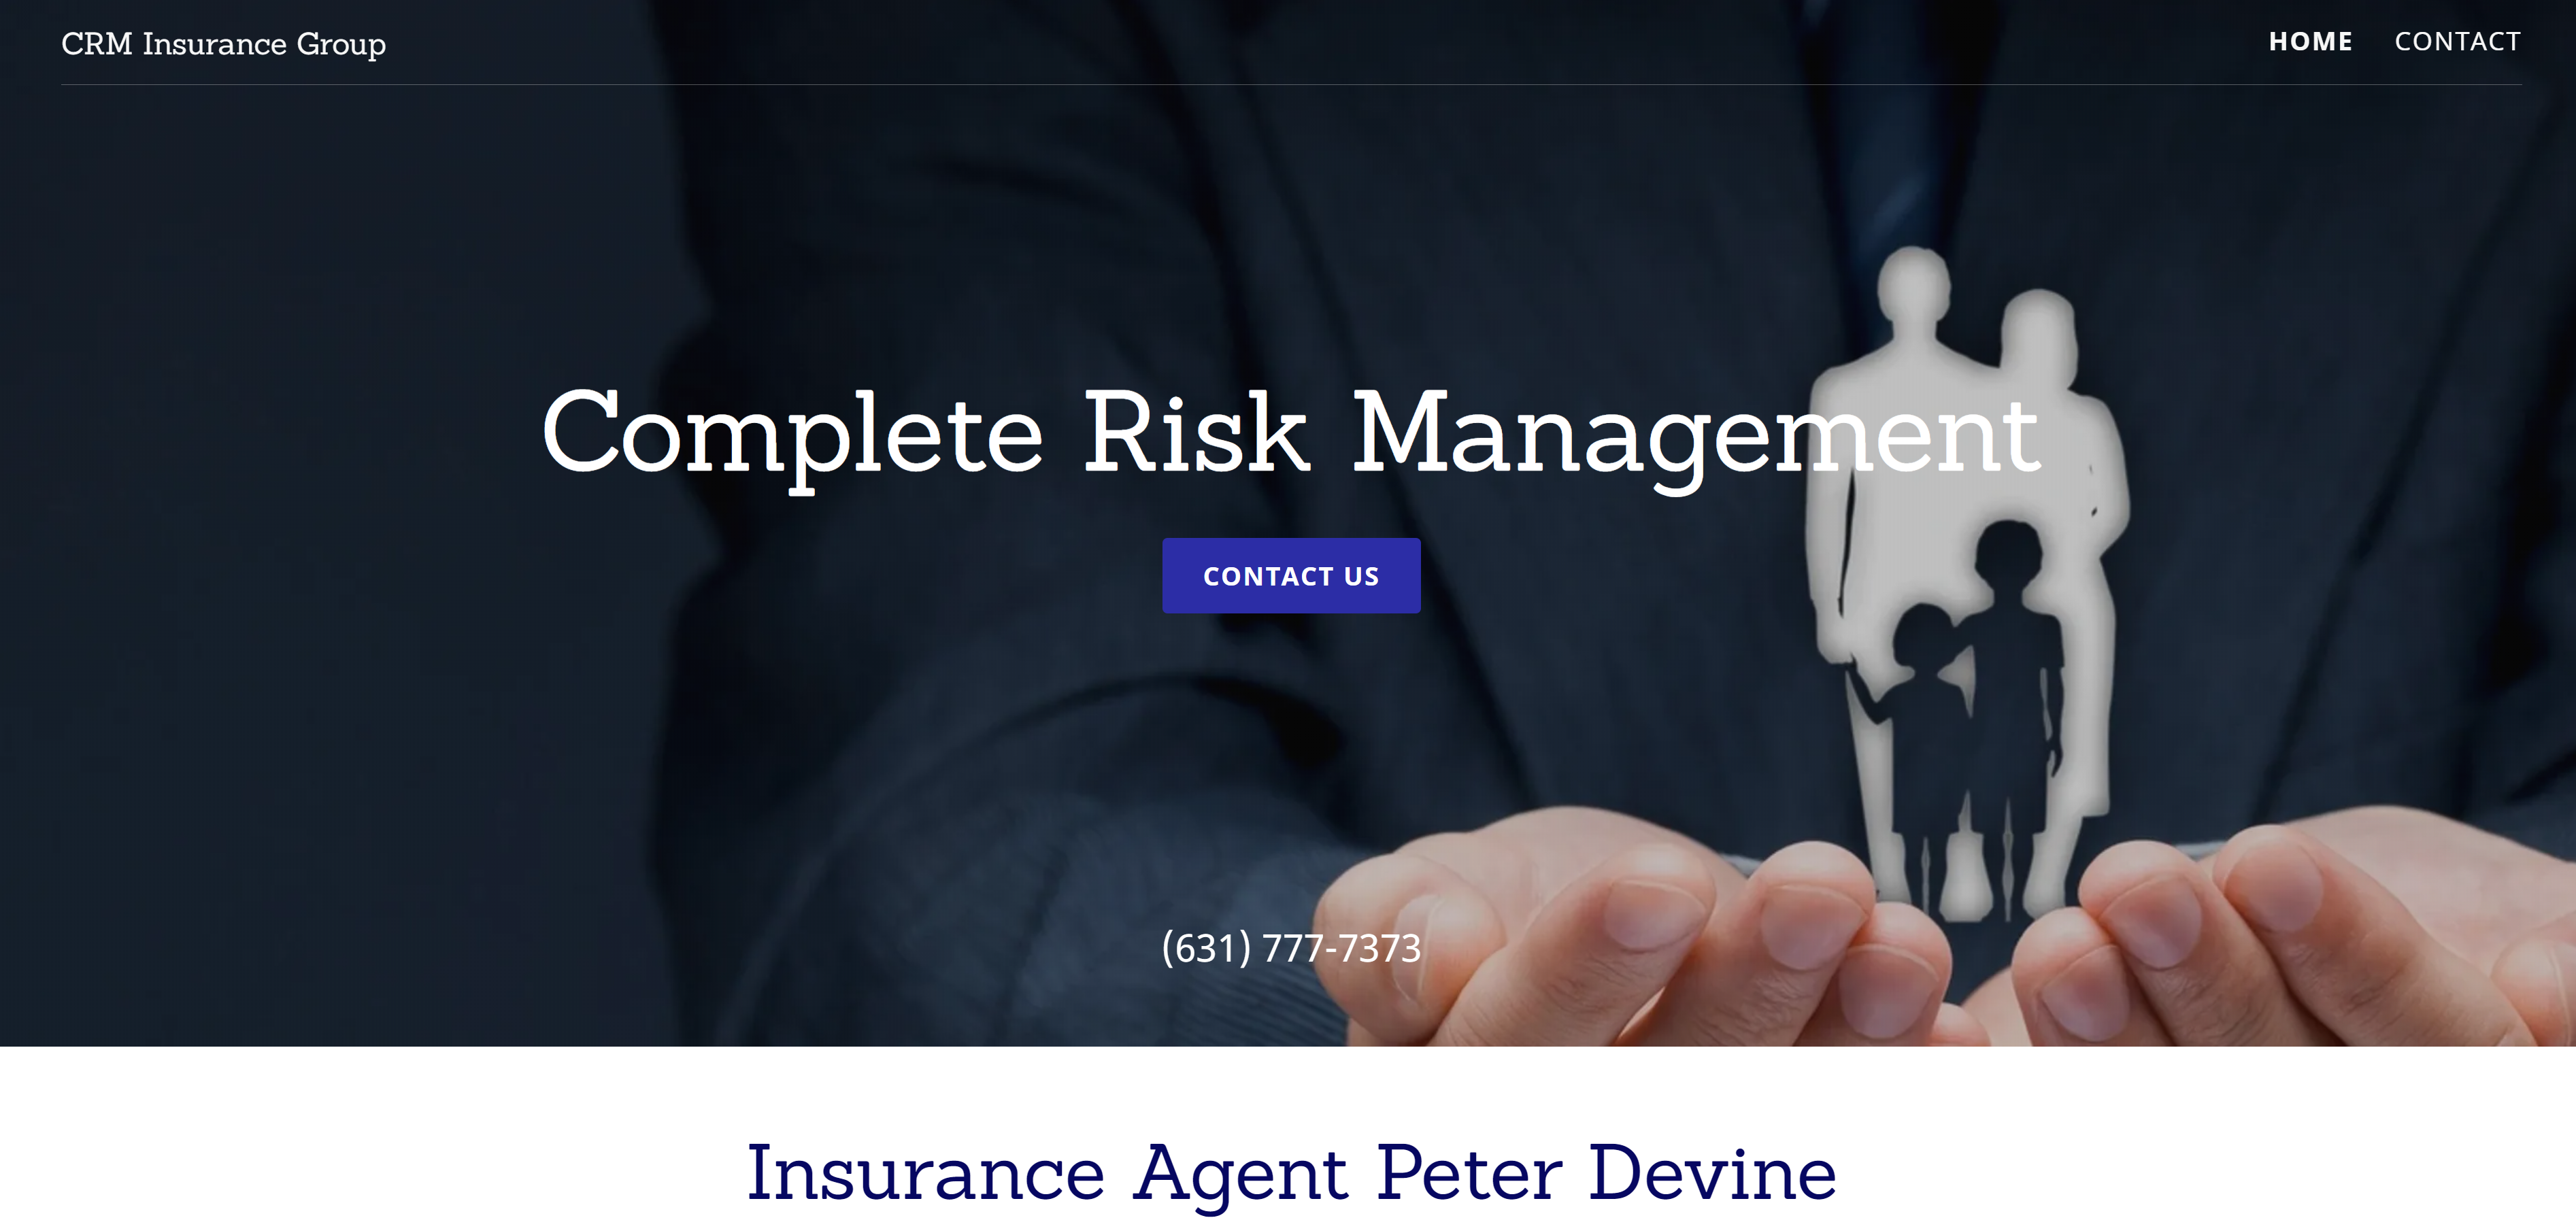 CRM Insurance Group